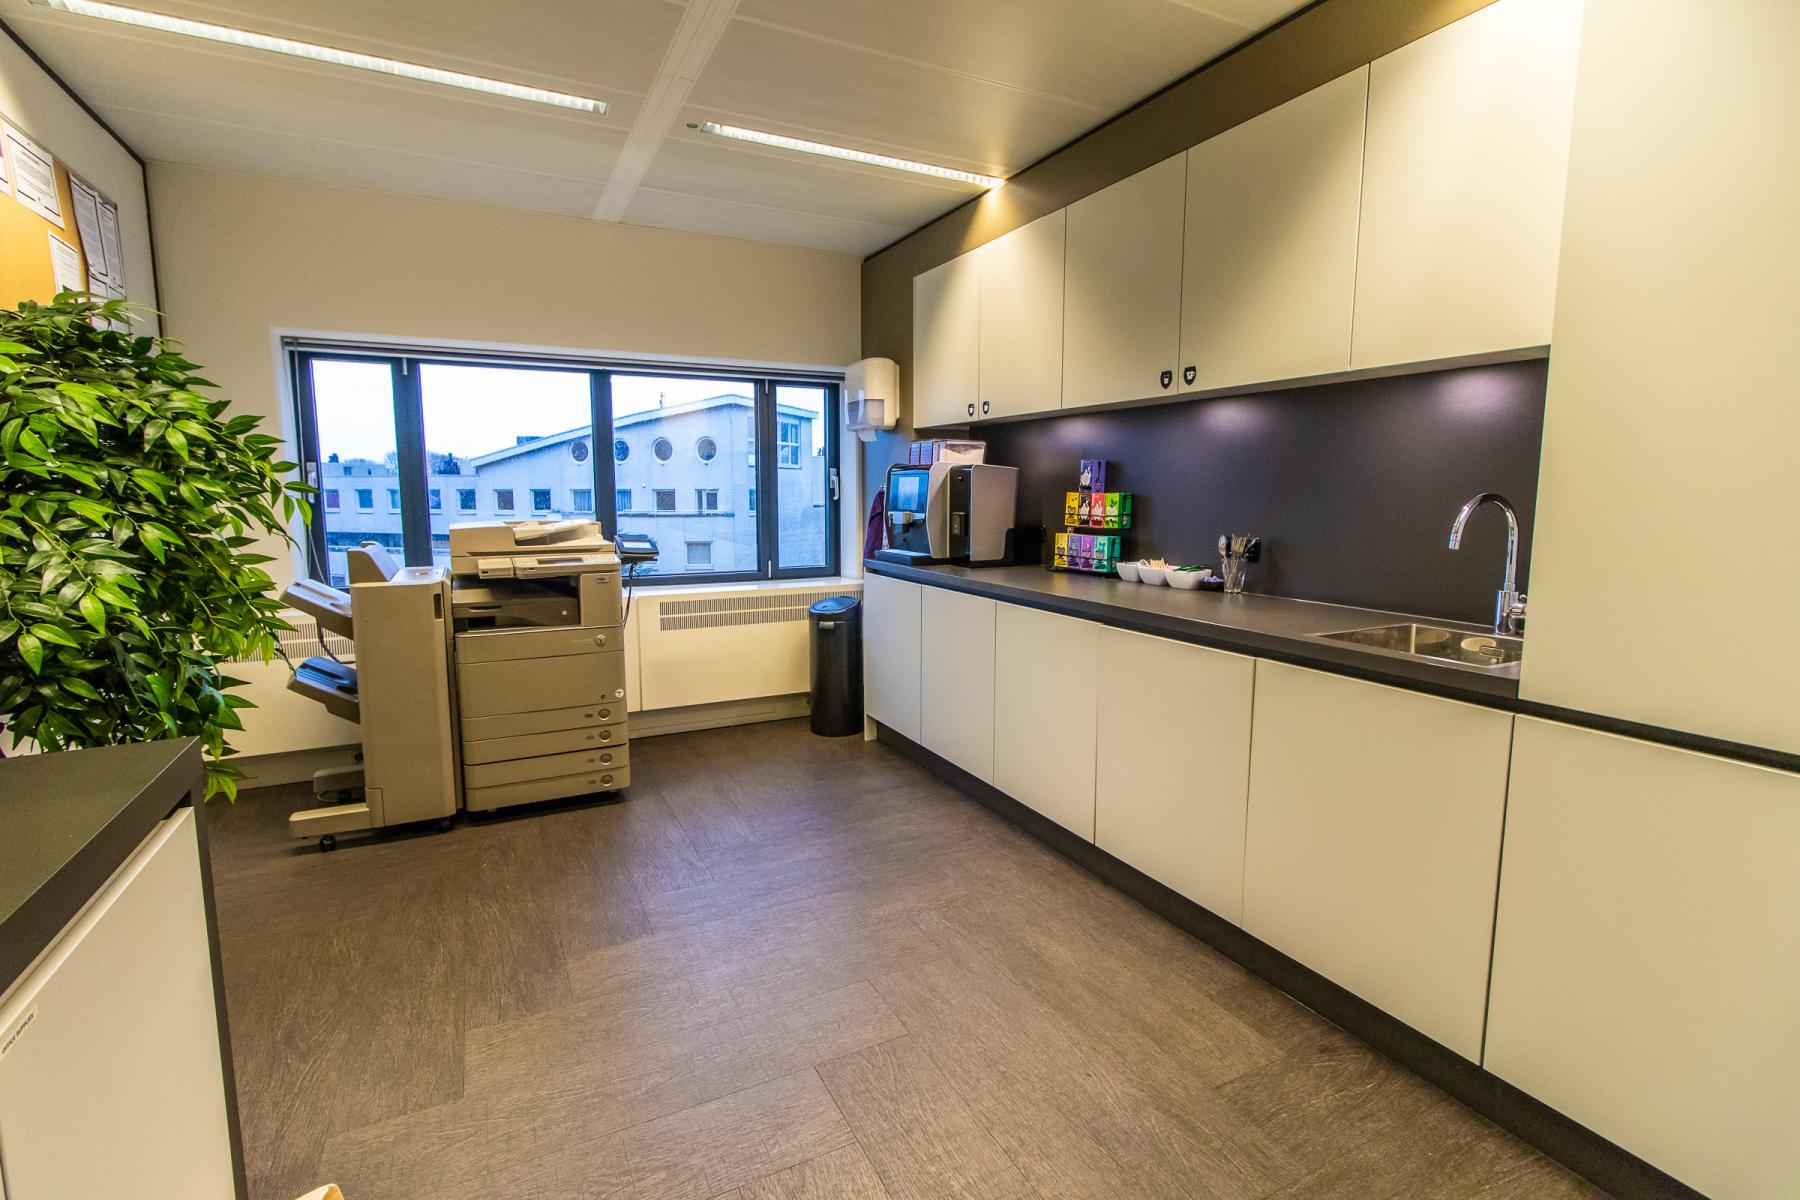 Pantry with modern appliances